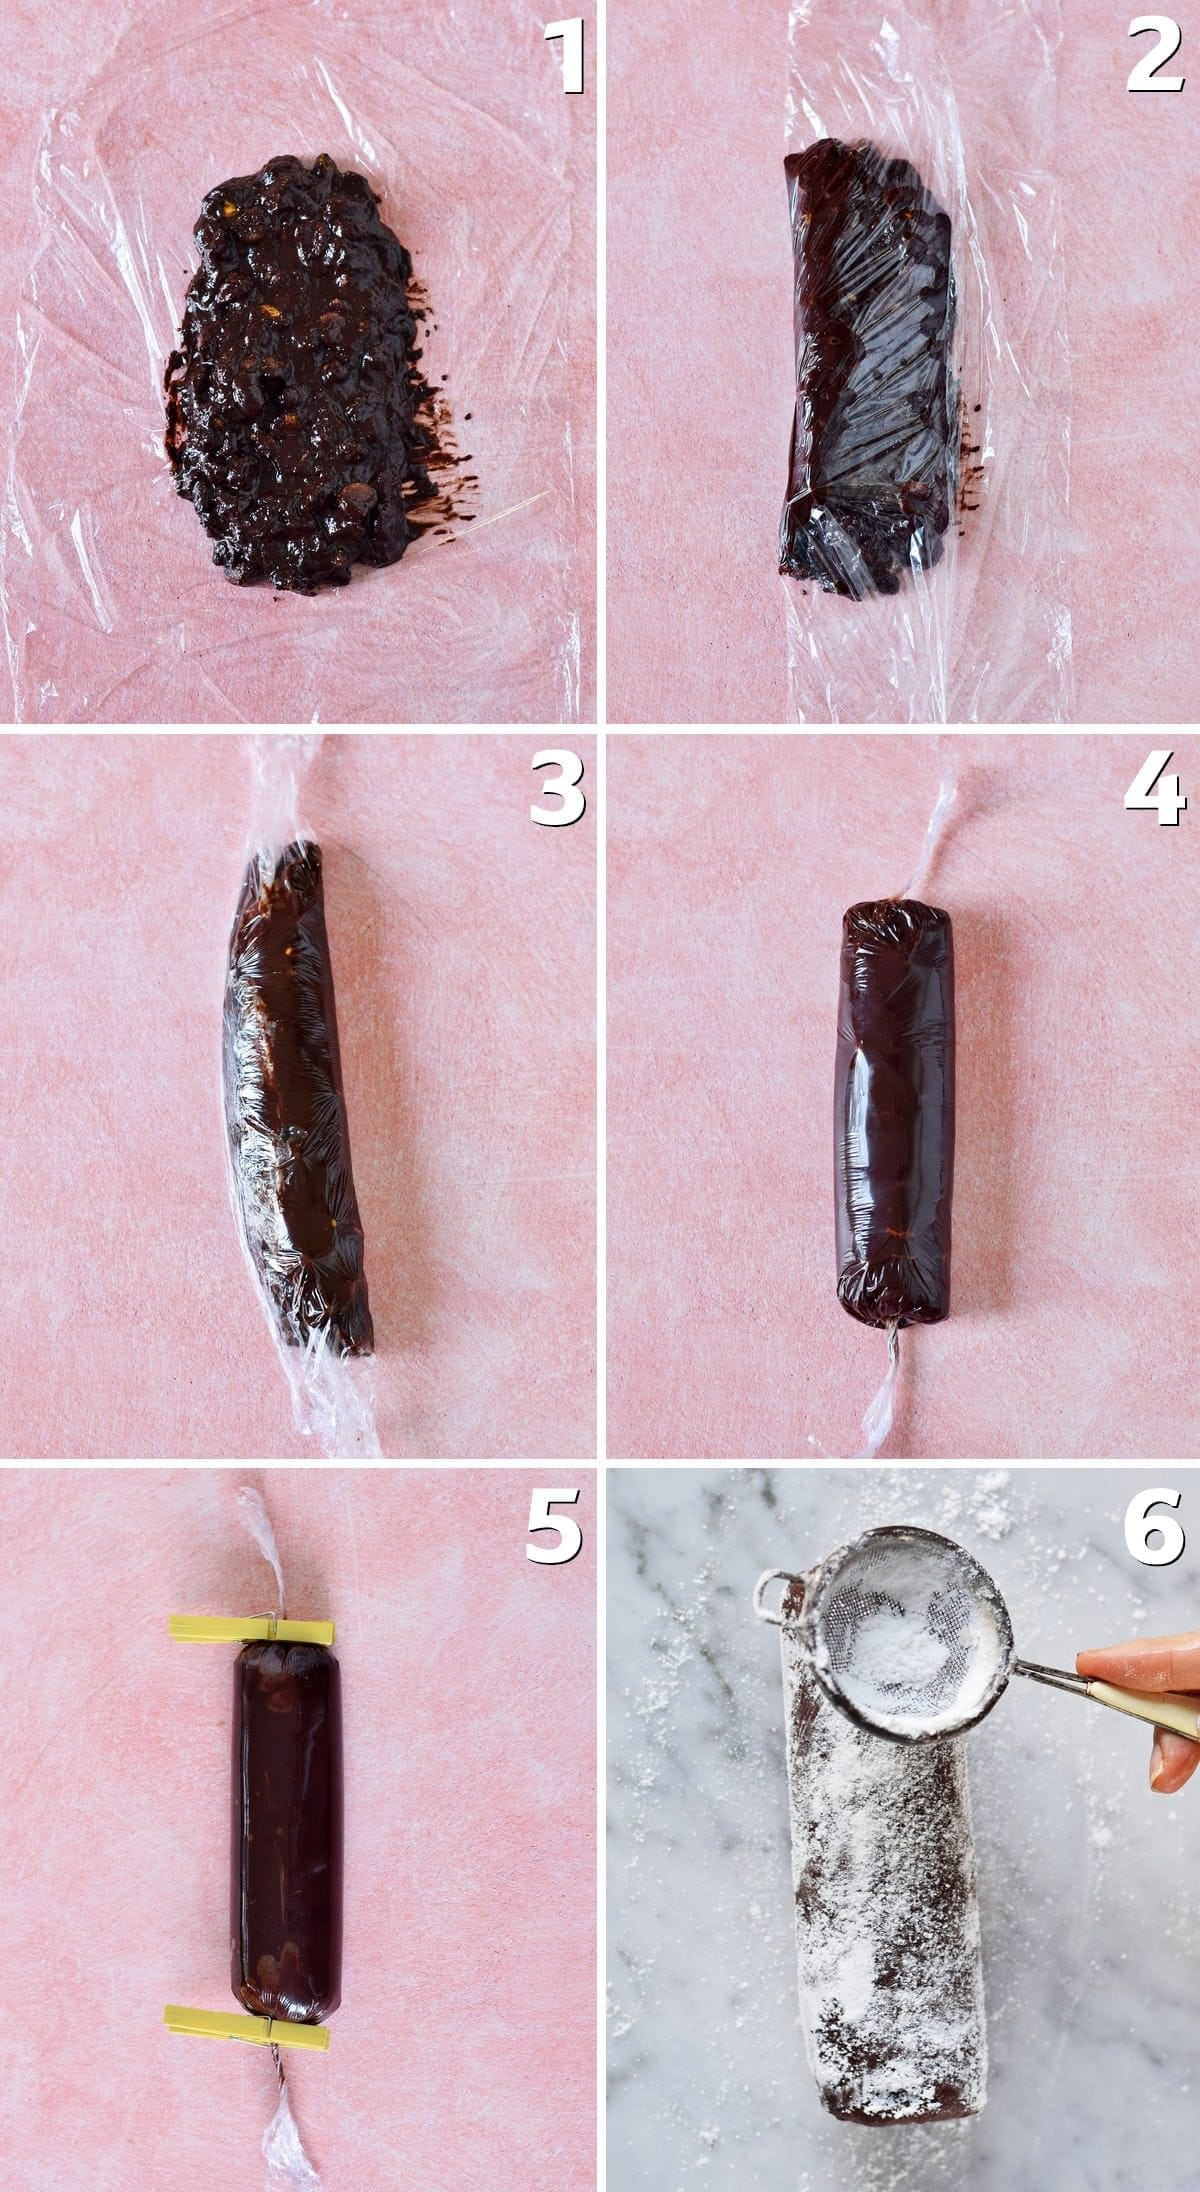 6 step-by-step photos of making chocolate salami